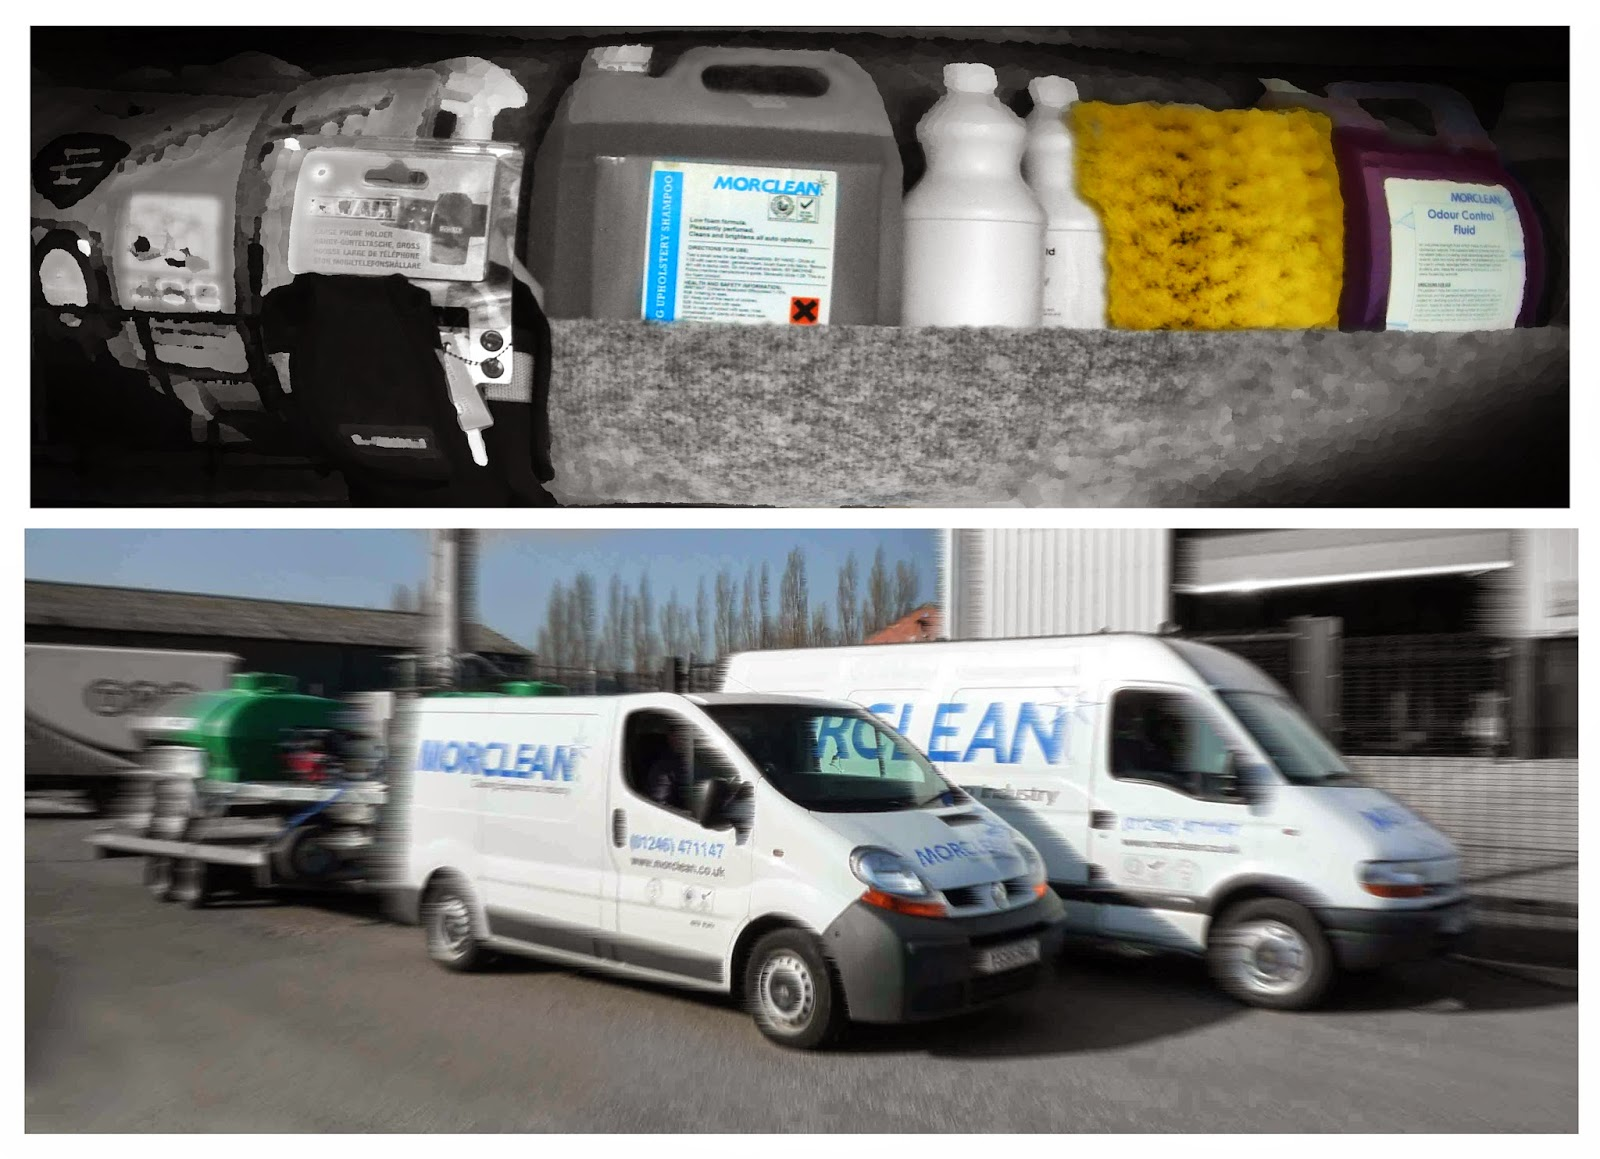 morclean car cleaning washing machine chemicals for sale derbyshire chesterfield